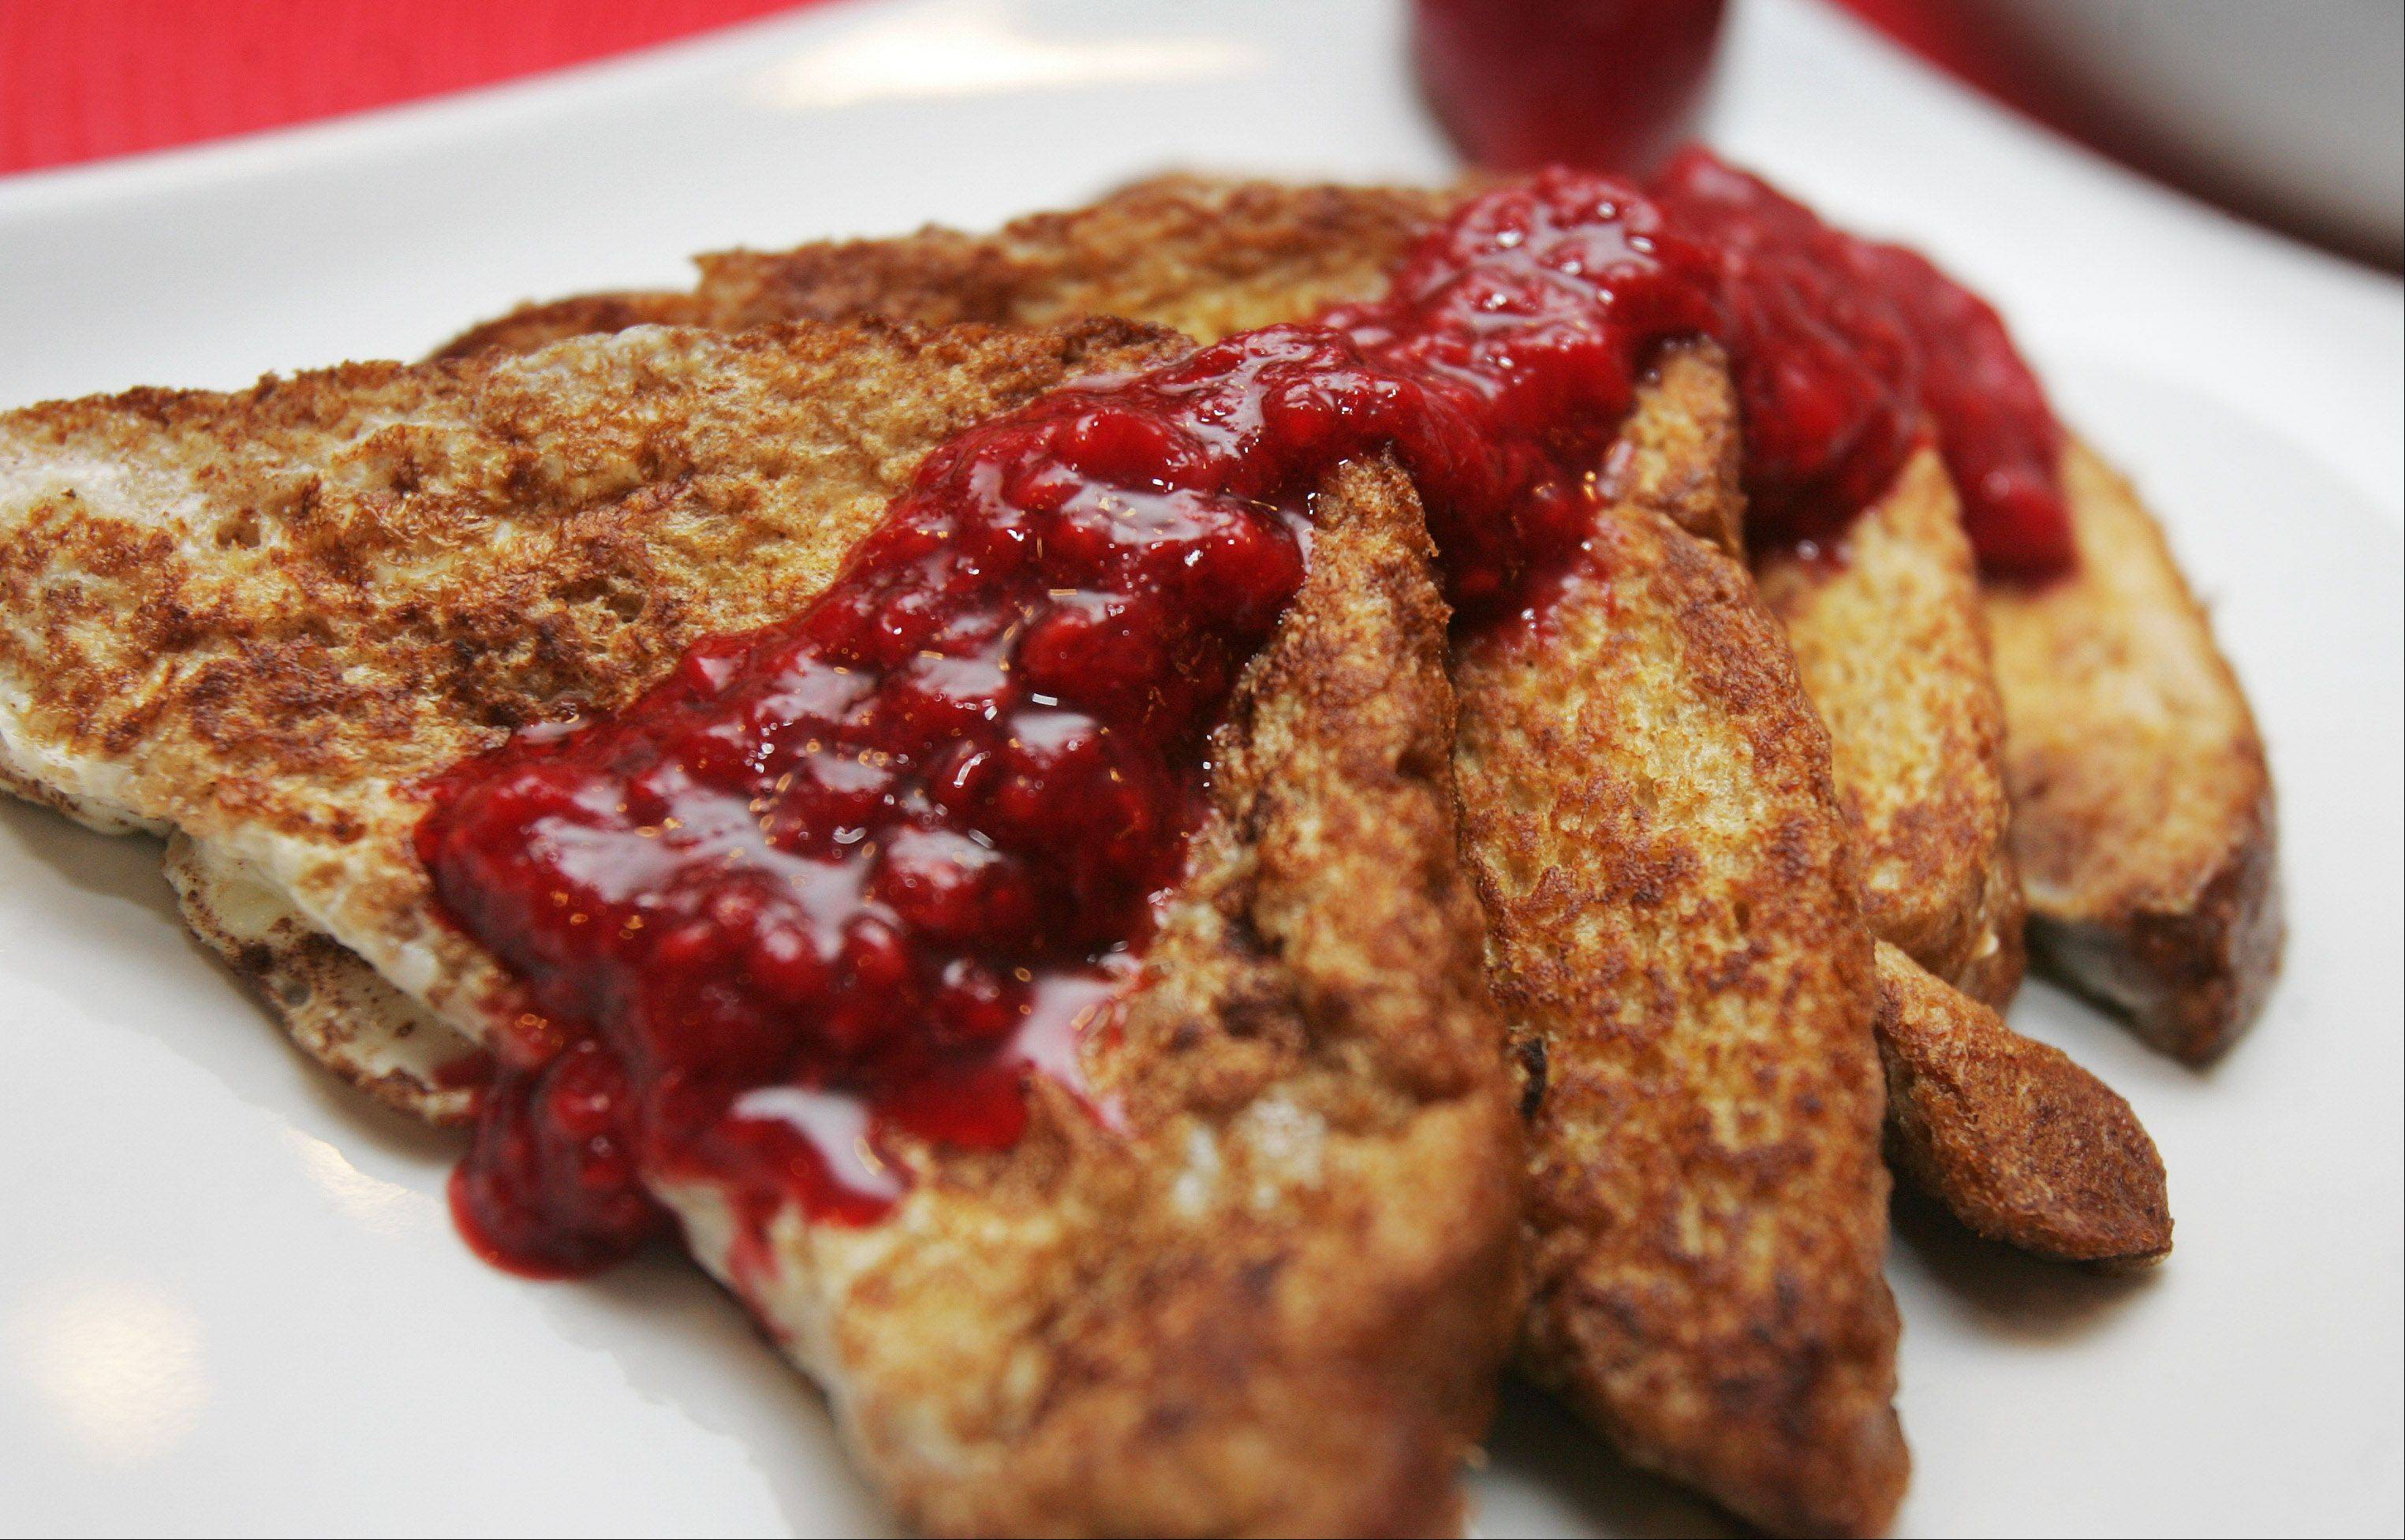 Pamper your sweetheart�s heart with a Valentine�s Day breakfast of berry-sauced whole wheat French toast.